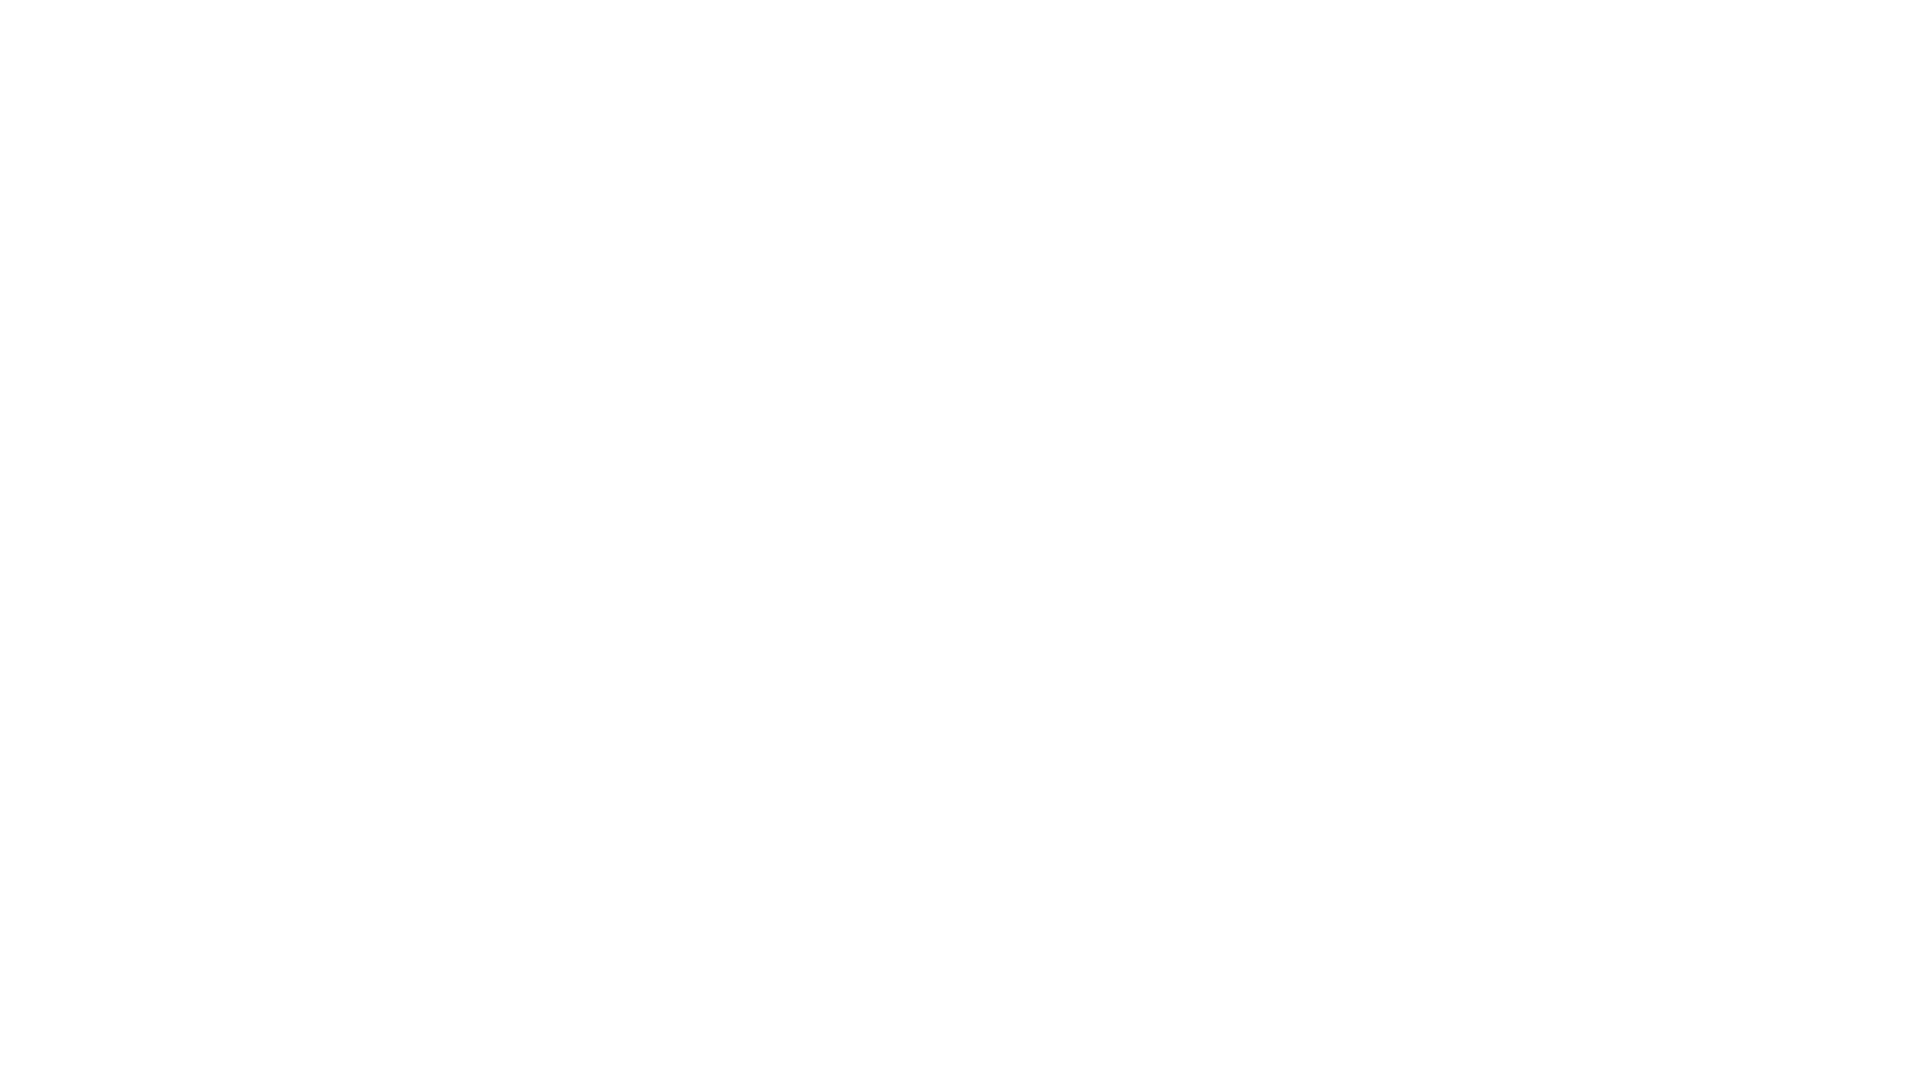 Department of Motion Pictures logo